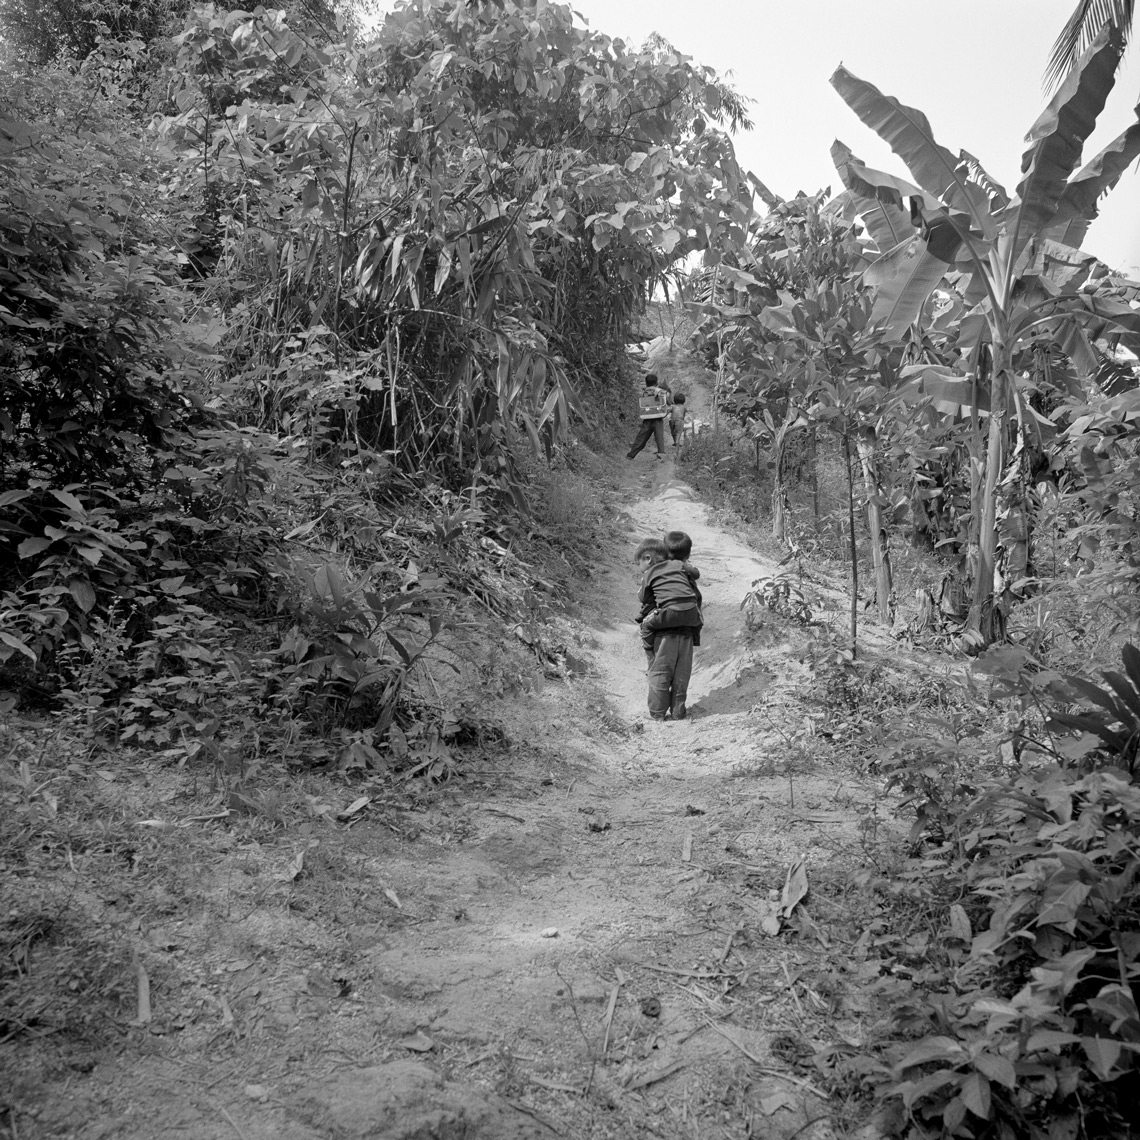 Country Trail, Khe Sanh, VN, 1991